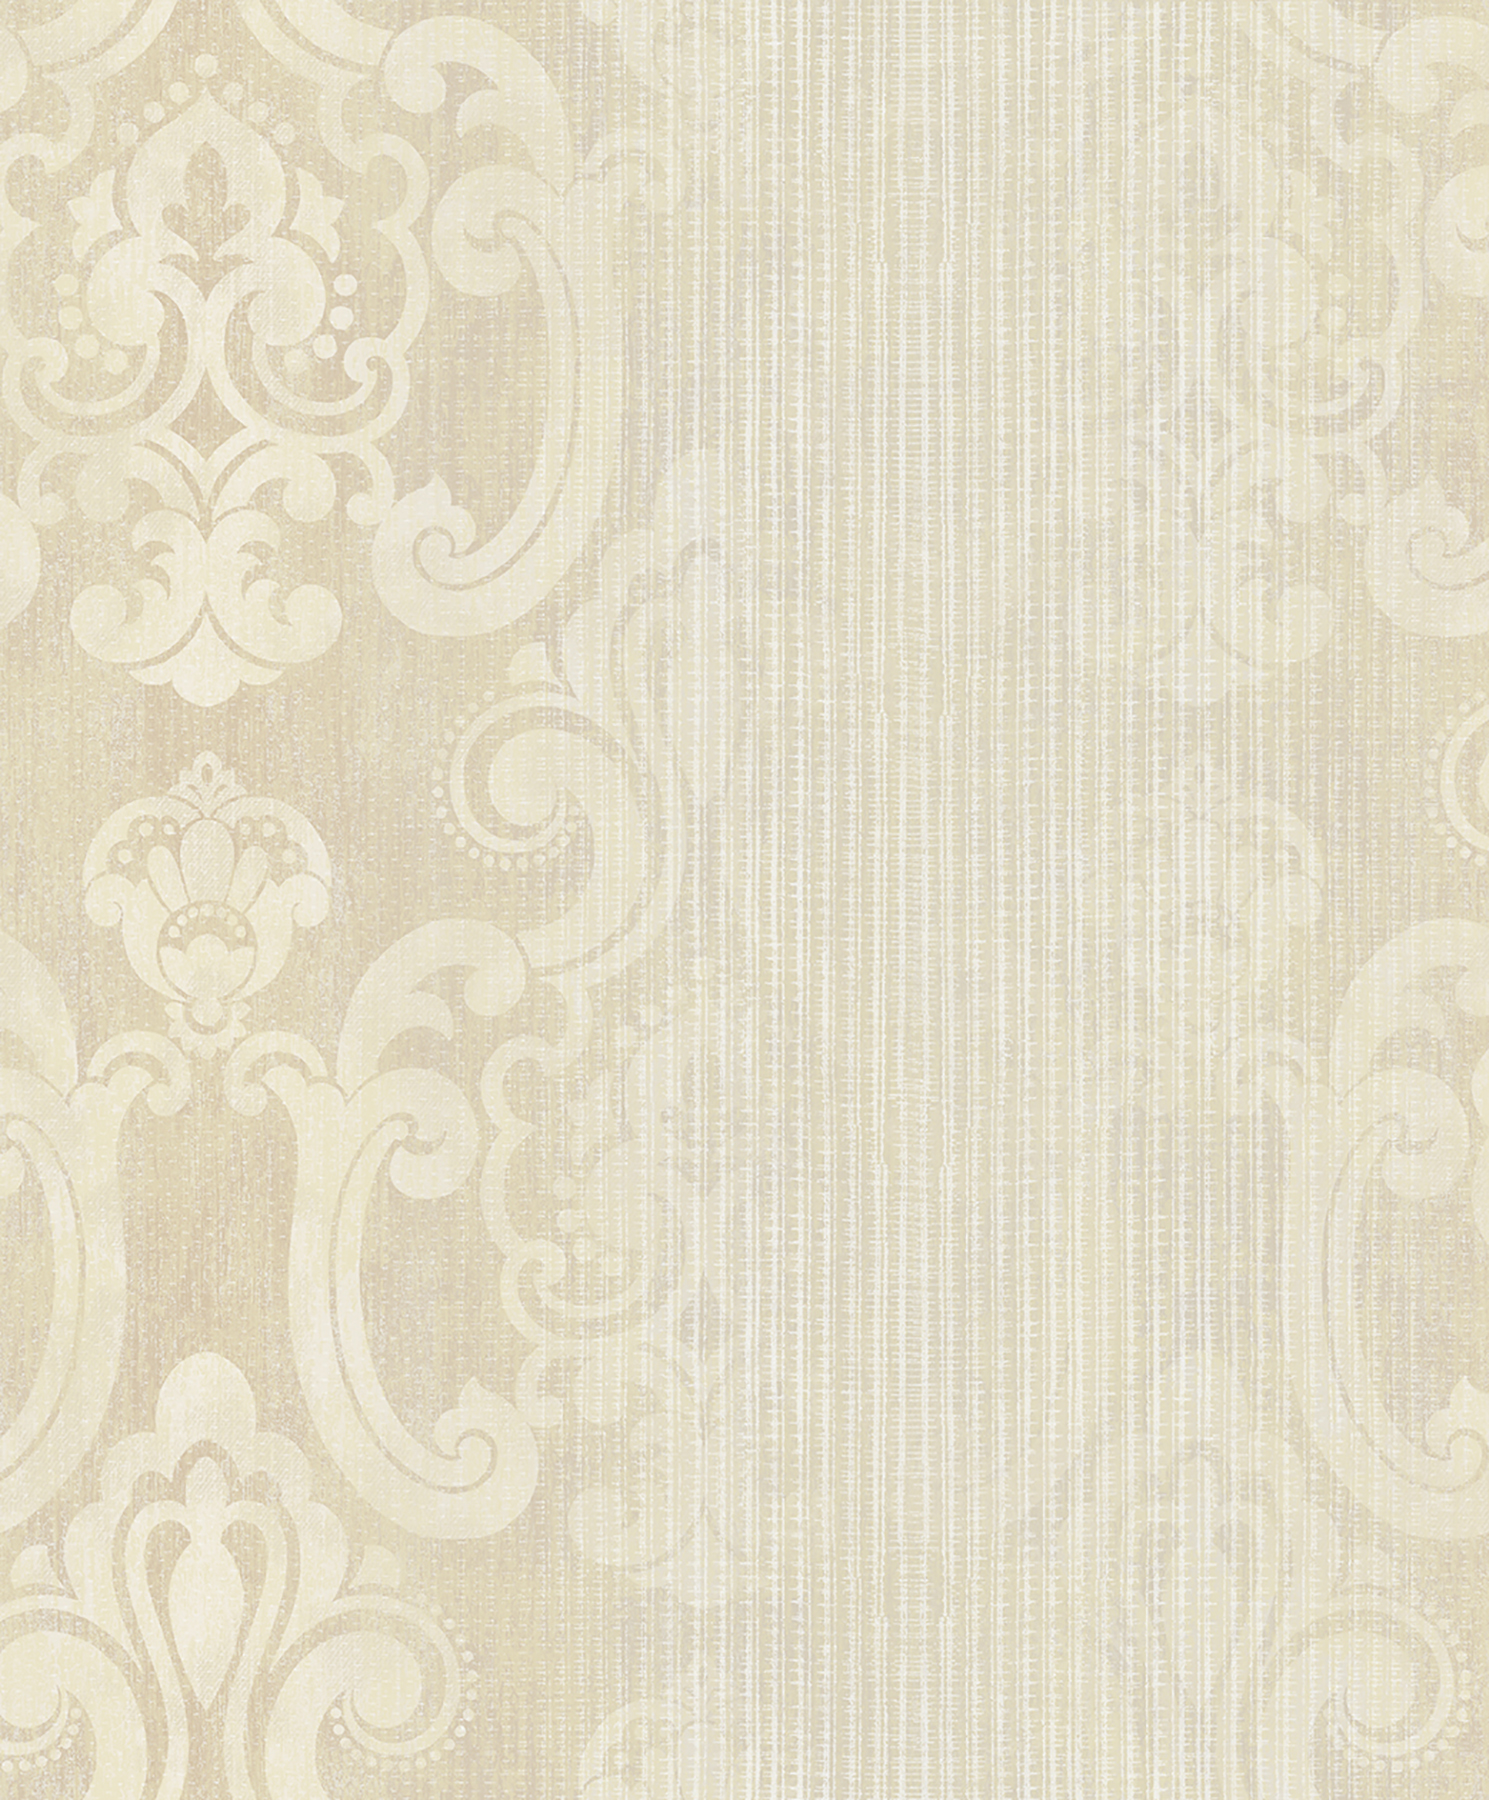 Picture of Ariana Gold Striped Damask Wallpaper